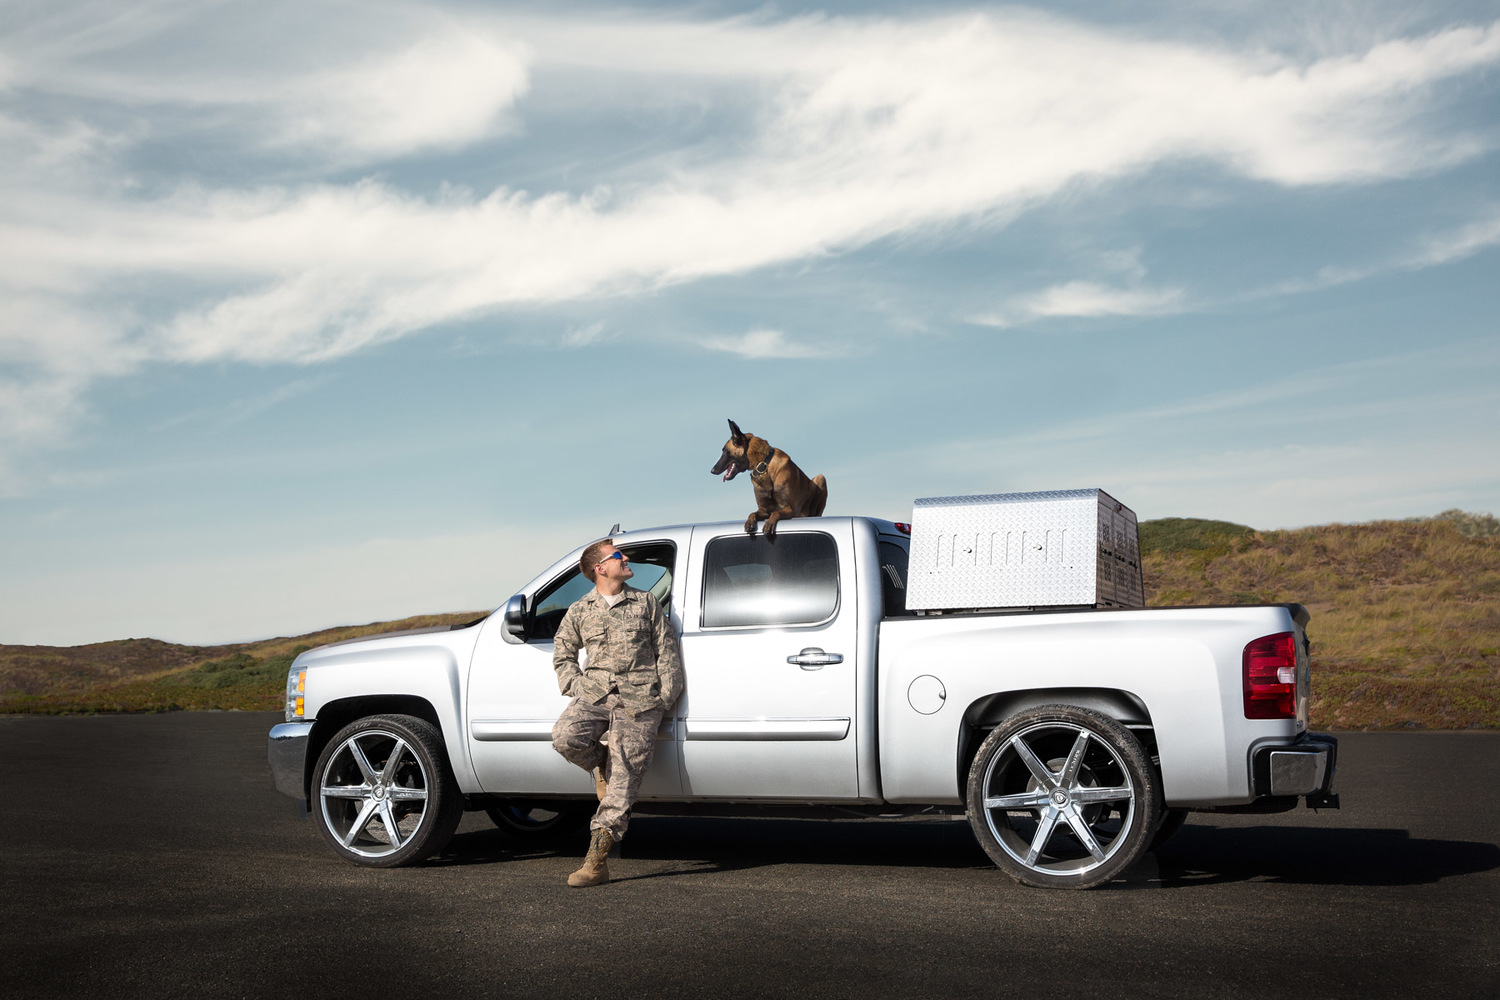 commercial-animal-photographer-man-and-dog-in-truck.jpg